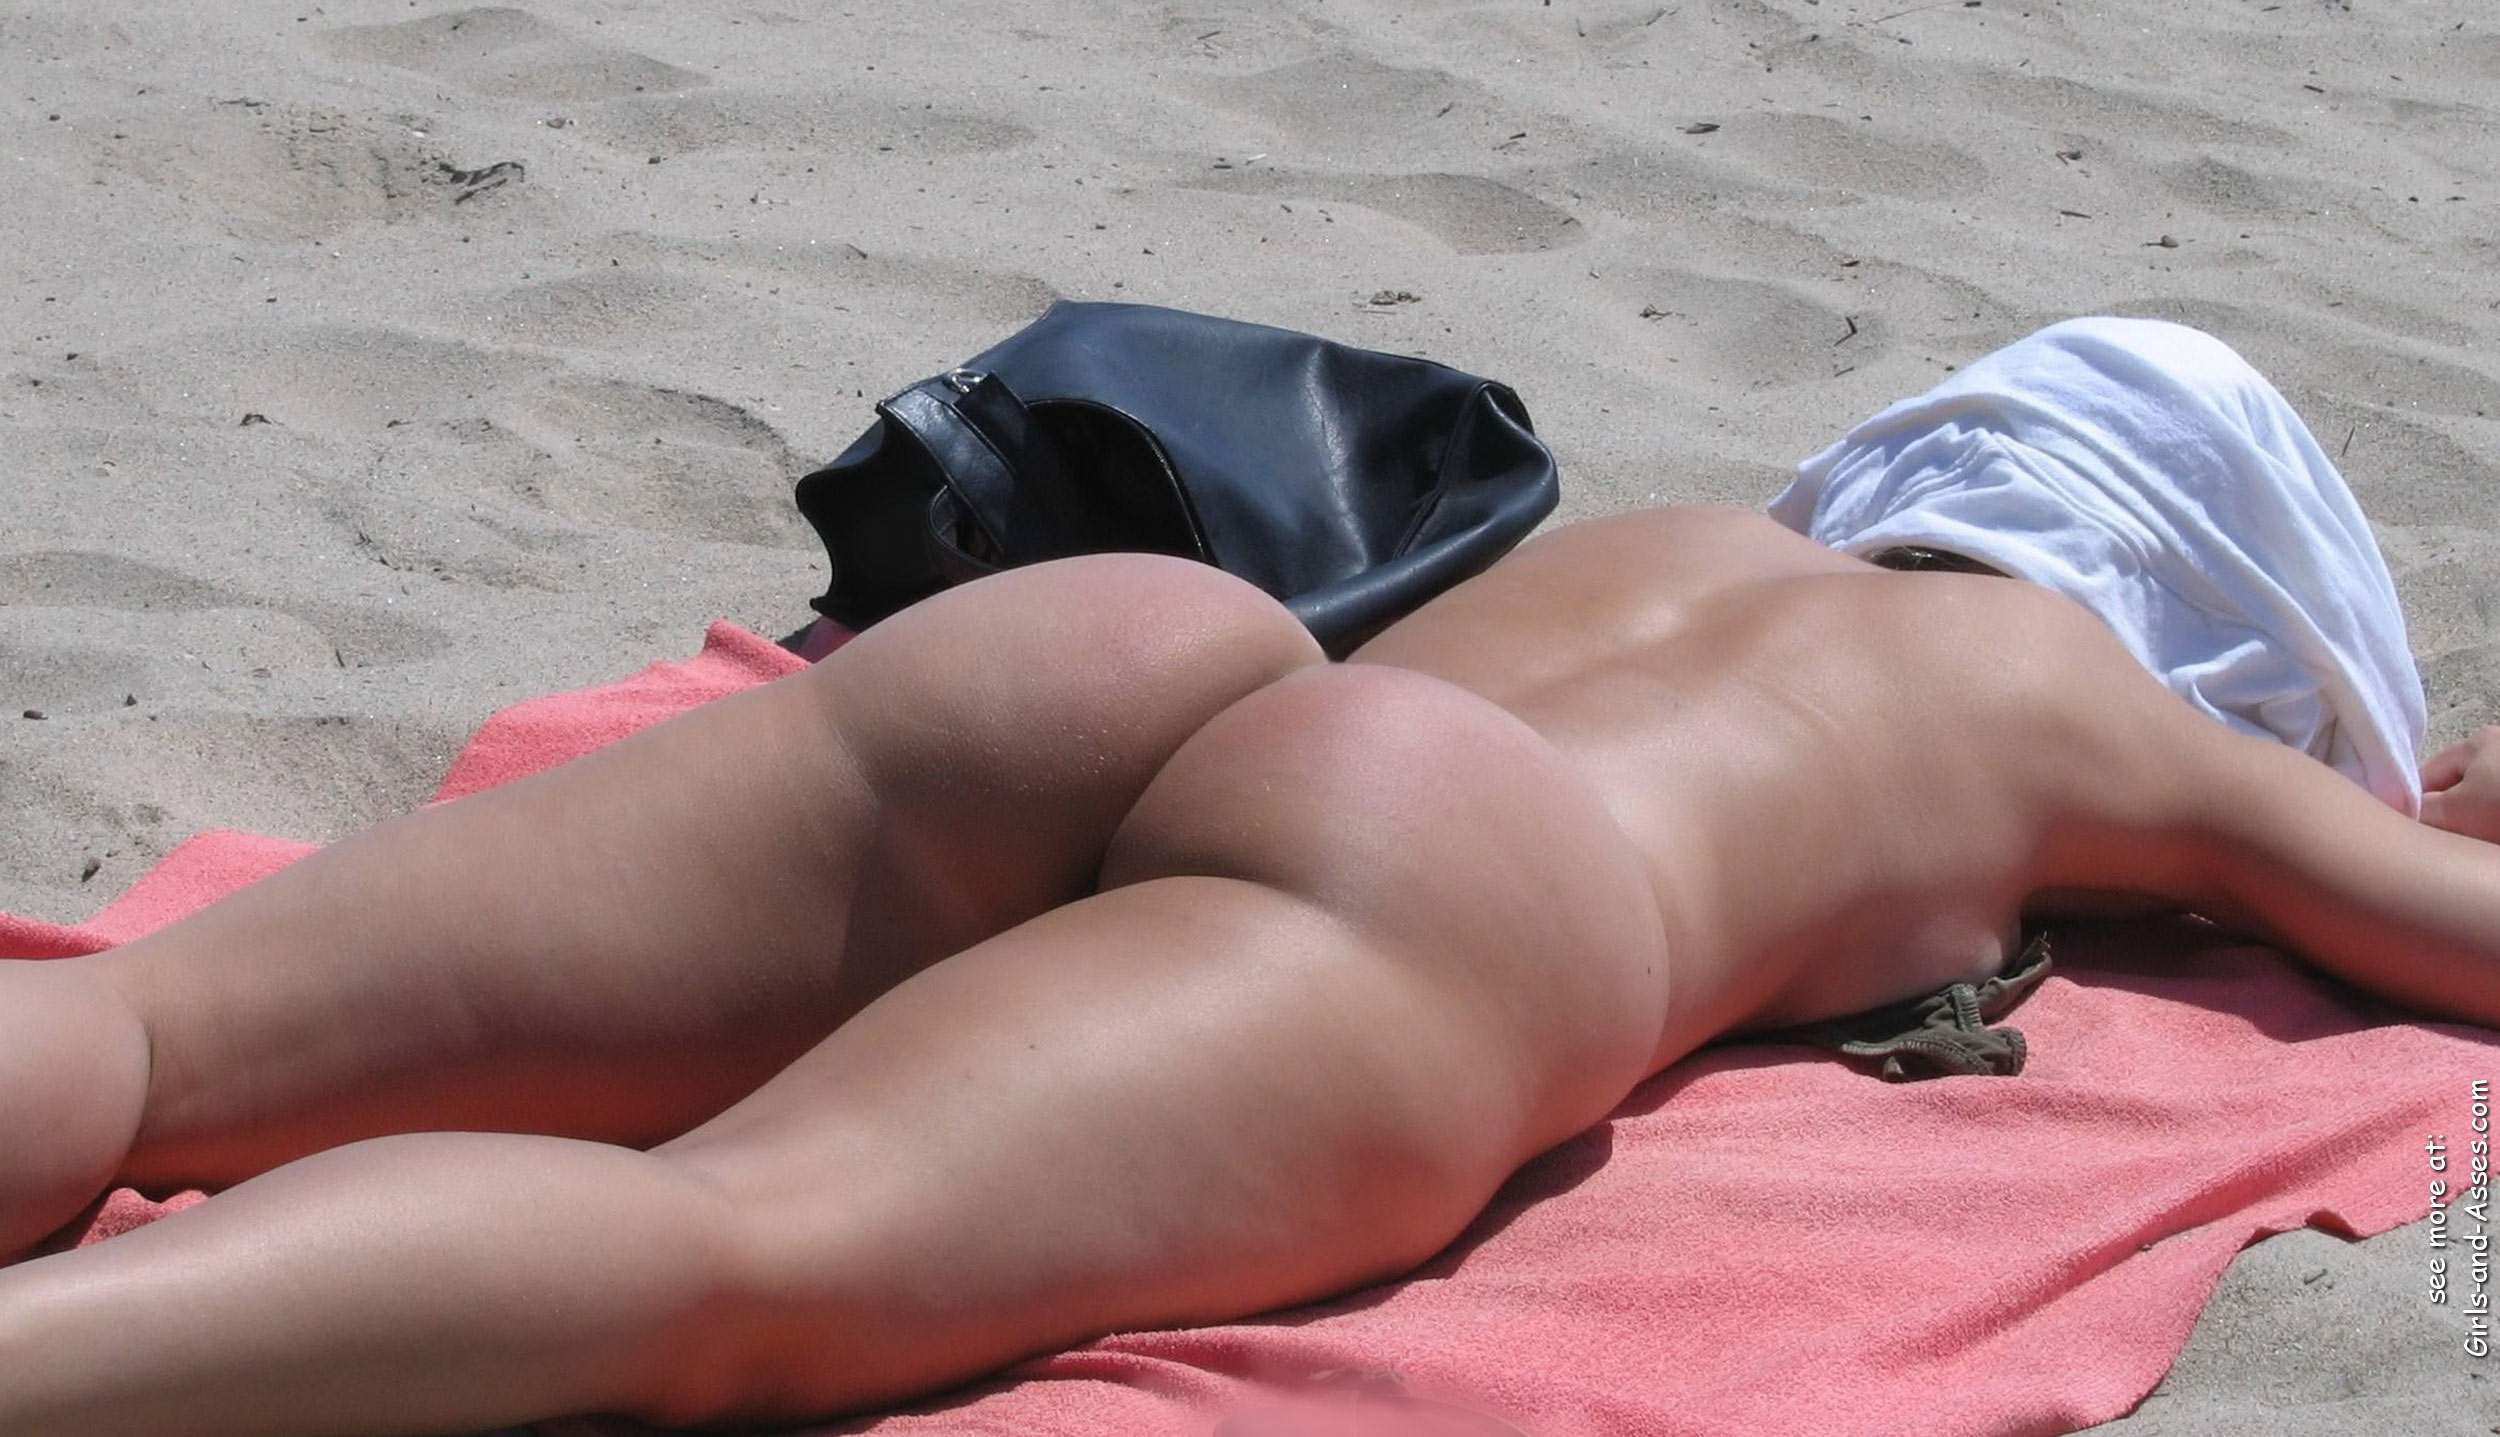 naked sunbathing tanning on the beach pic 02423